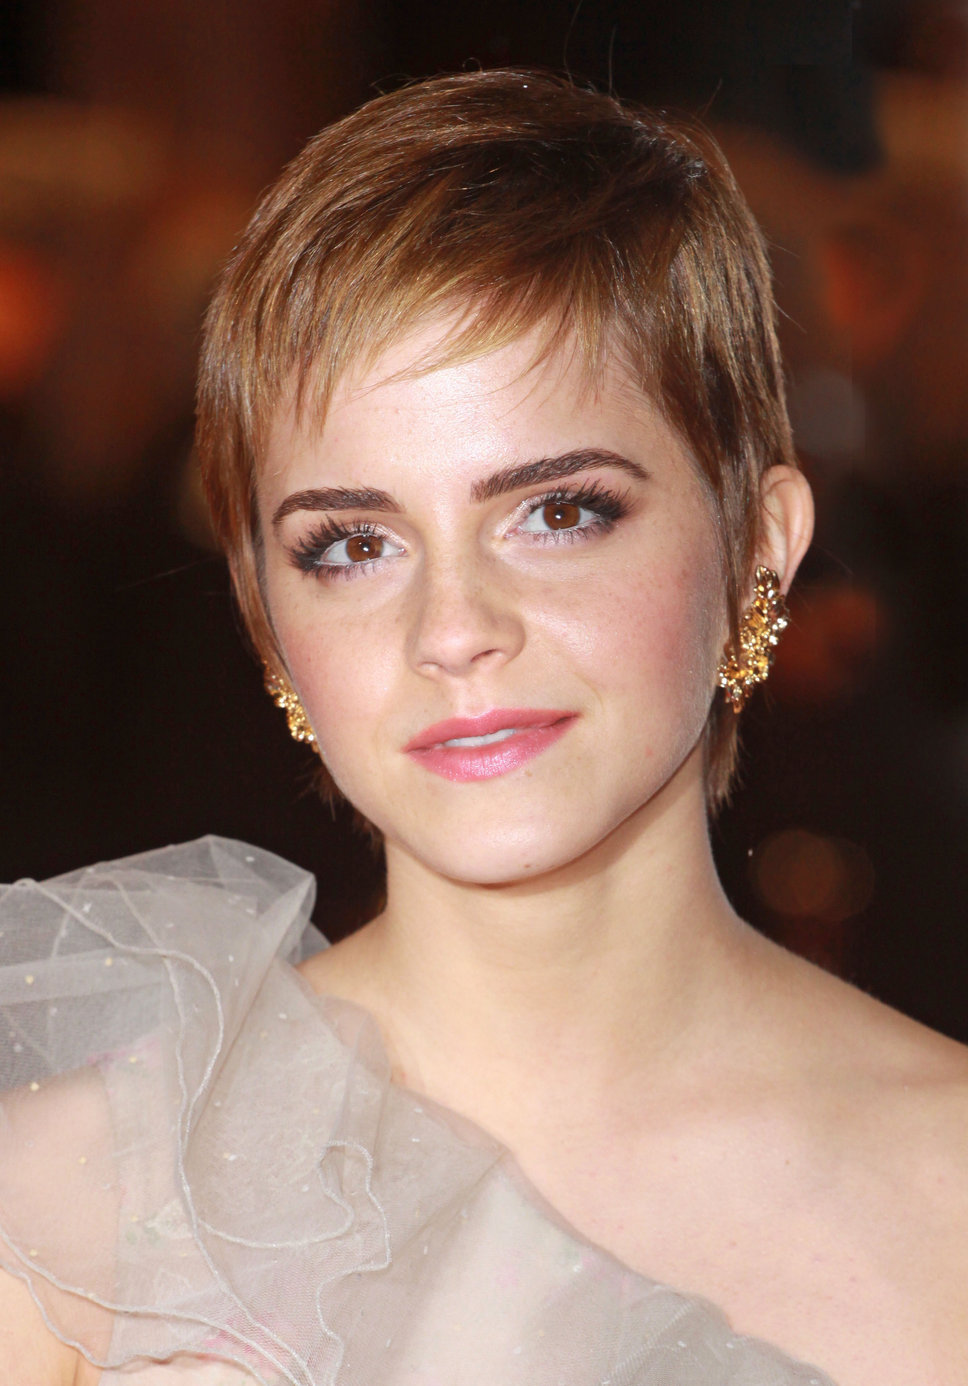 Emma Watson Soft Pixie Hair Cut With Wispy Bangs Women